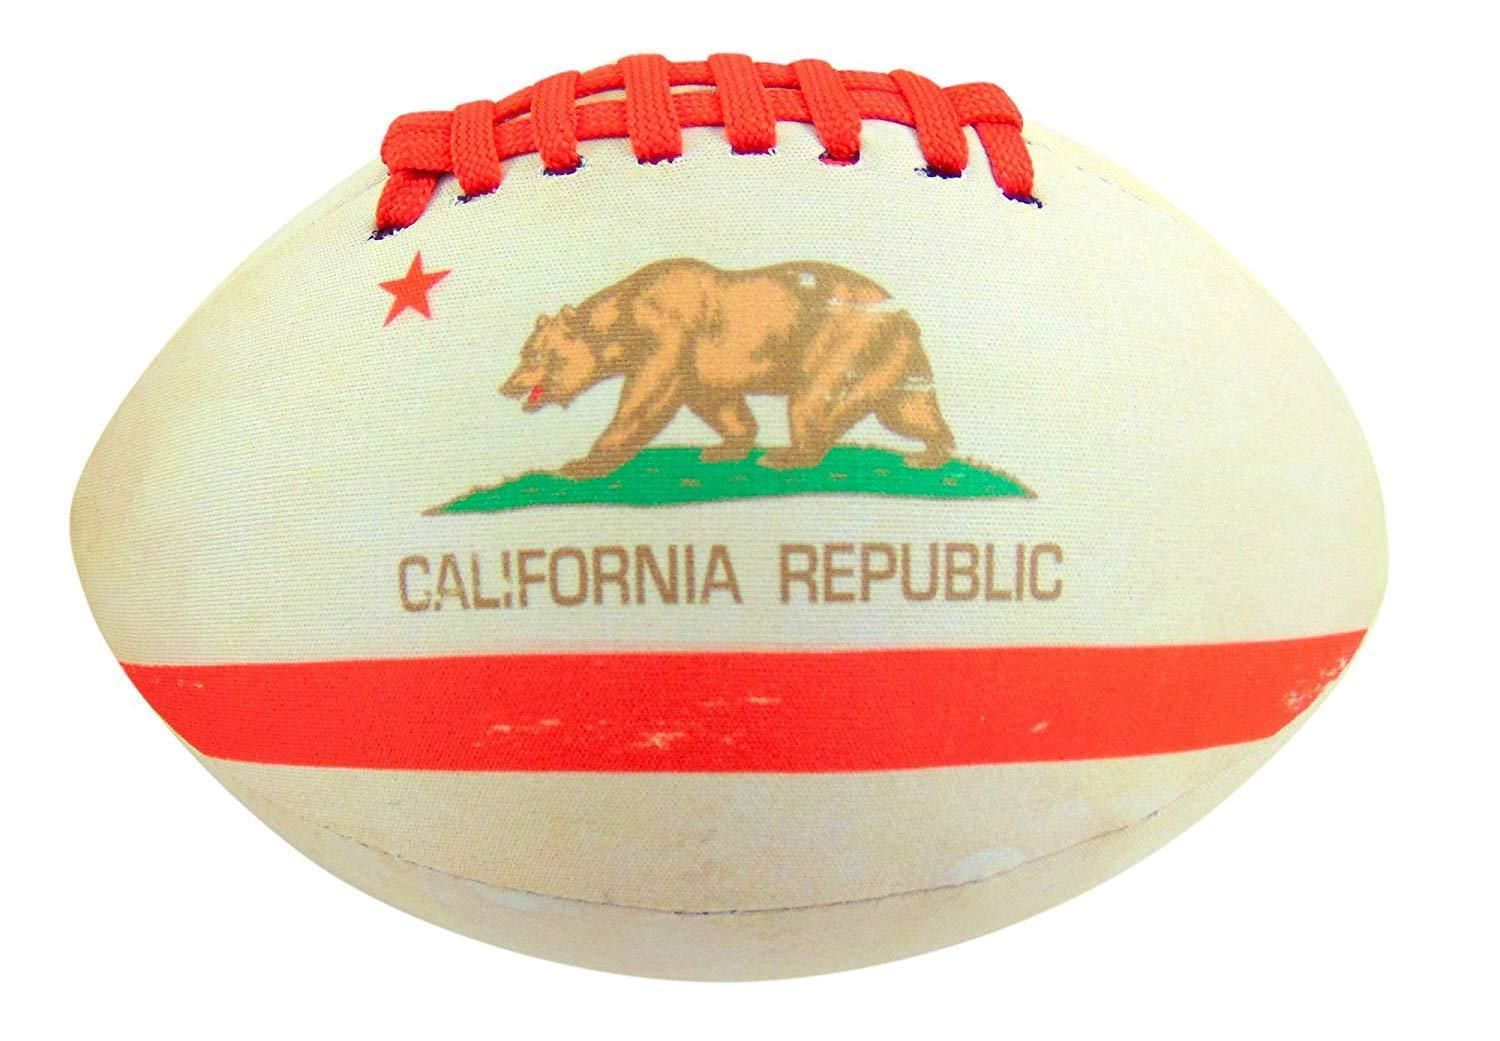 Chipboard Sheets 183163 Get A Gadget California Flag Football Soft Neoprene Ball For Kids 8 Inches Long Buy I California Flag Flag Football Christmas Bulbs